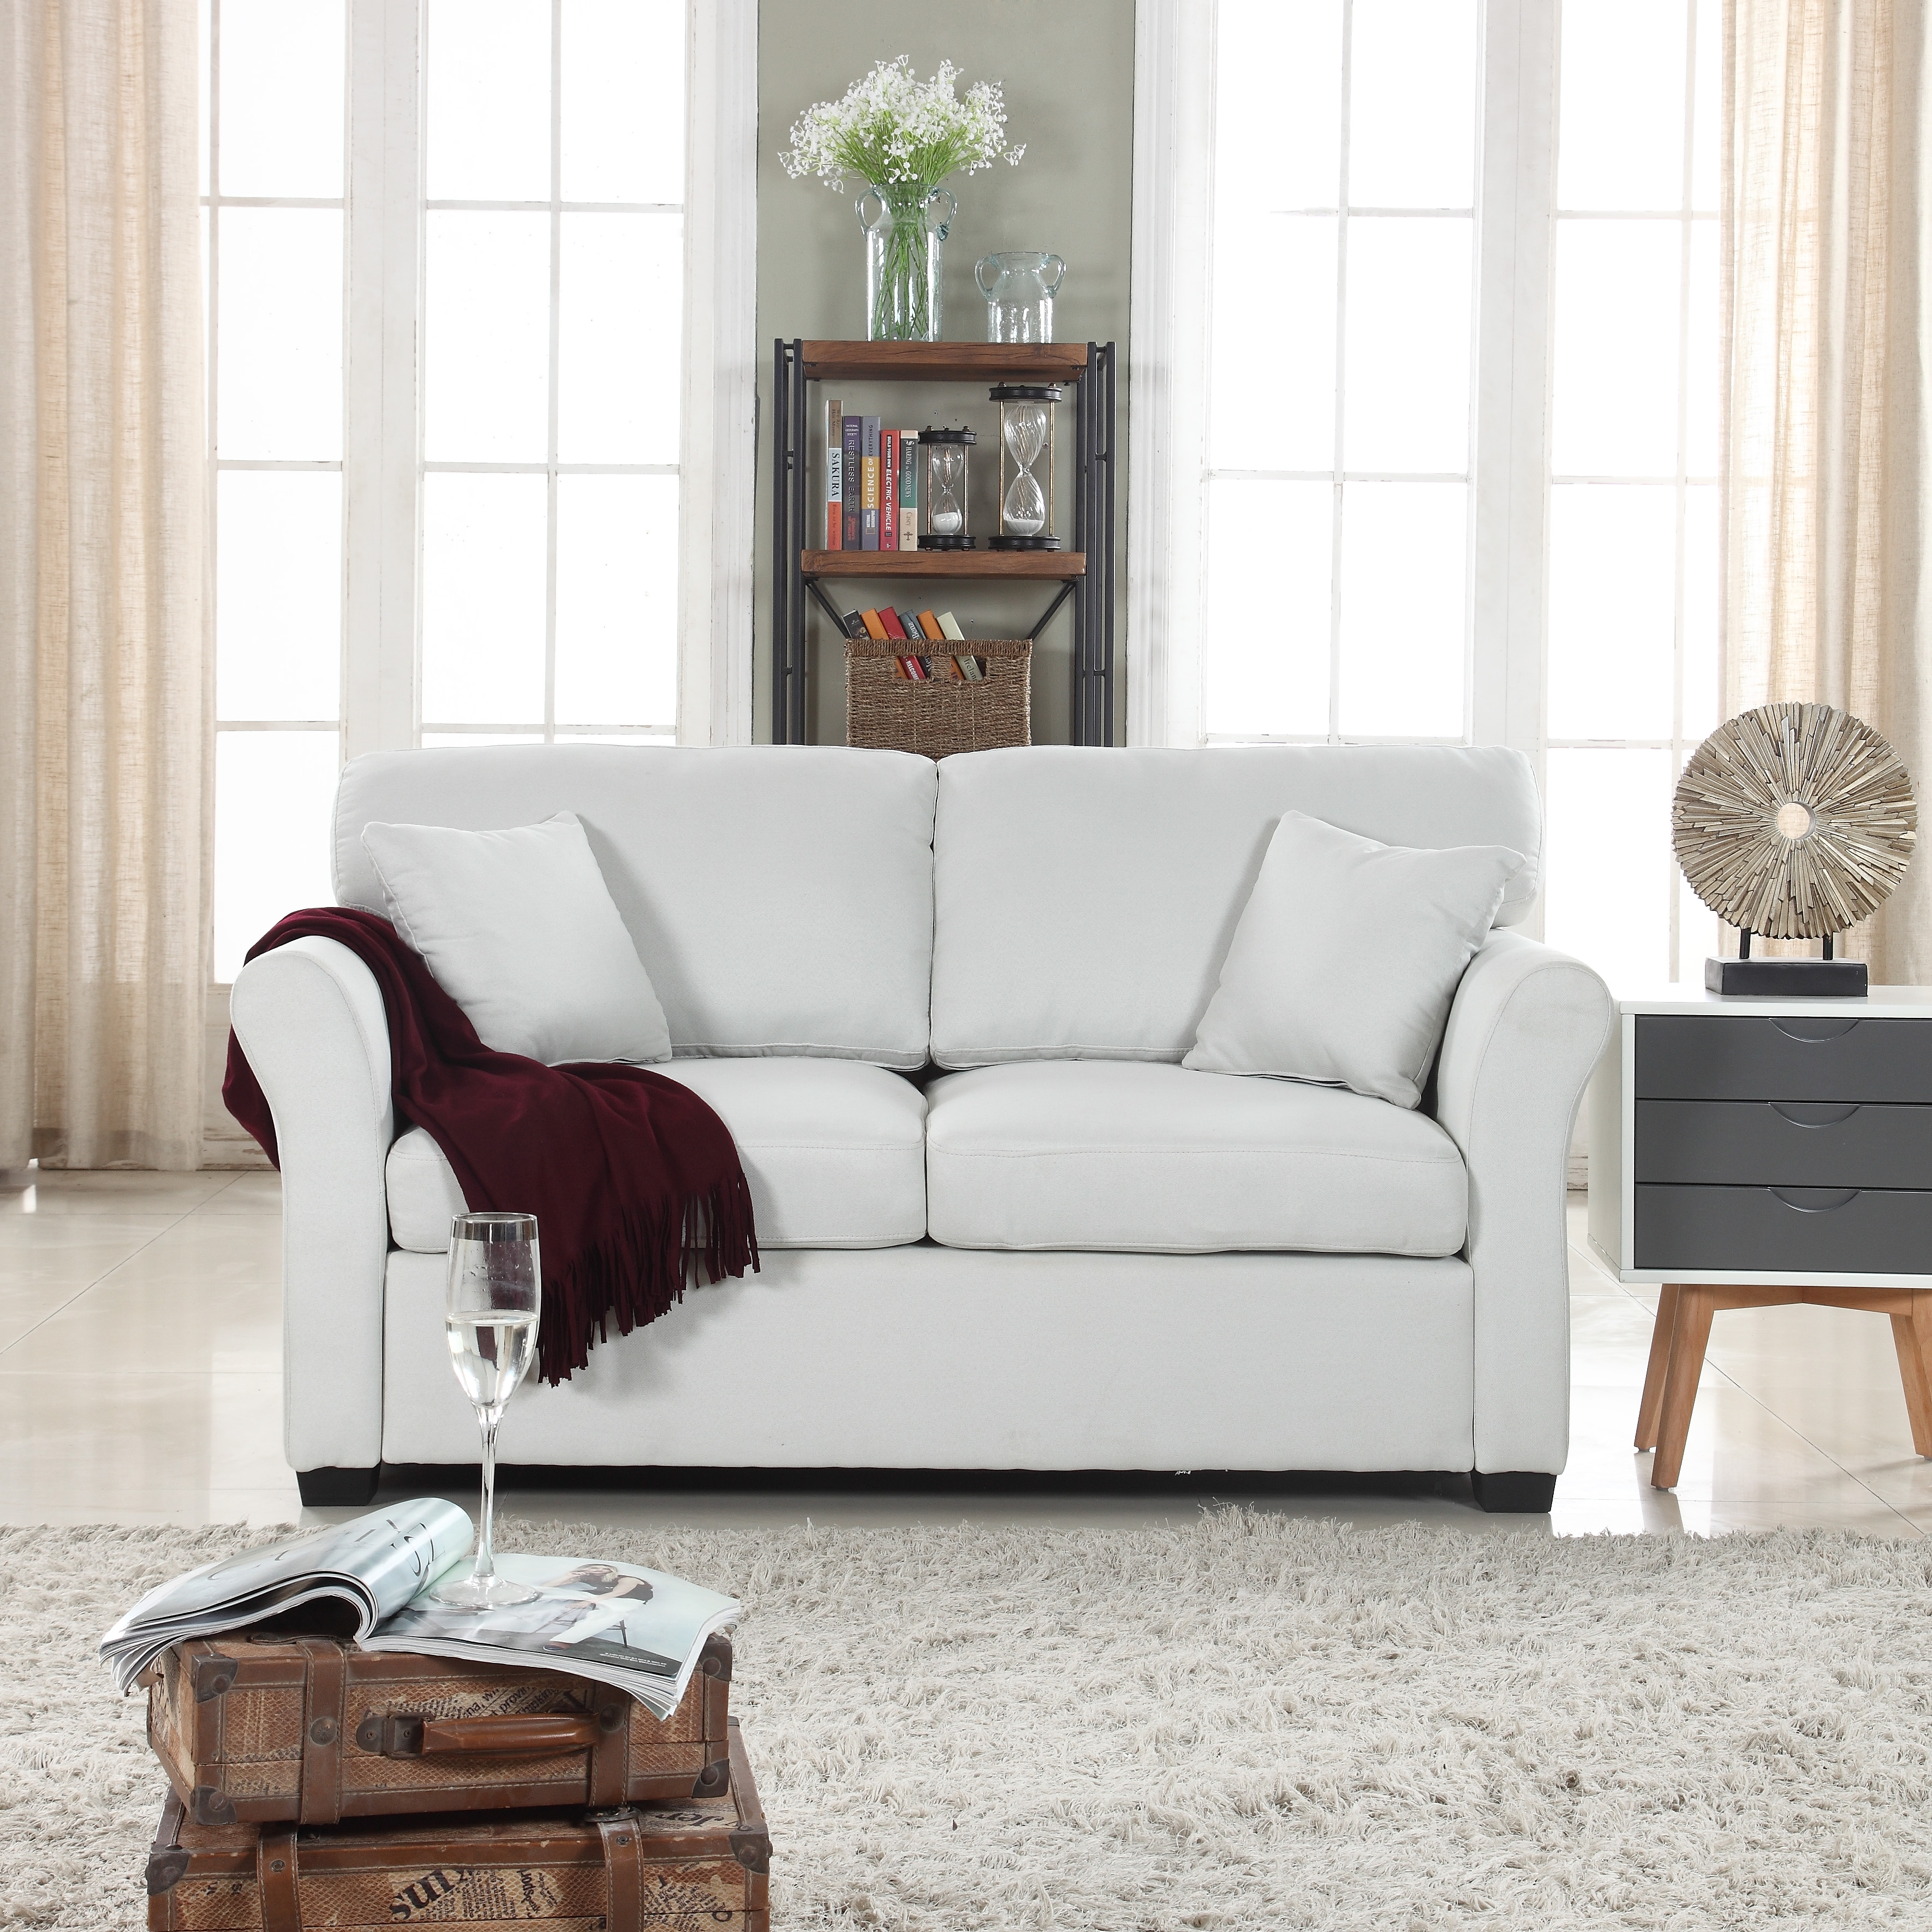 Traditional Ultra Comfortable Linen Fabric Living Room Fabric Loveseat Couch, Ivory